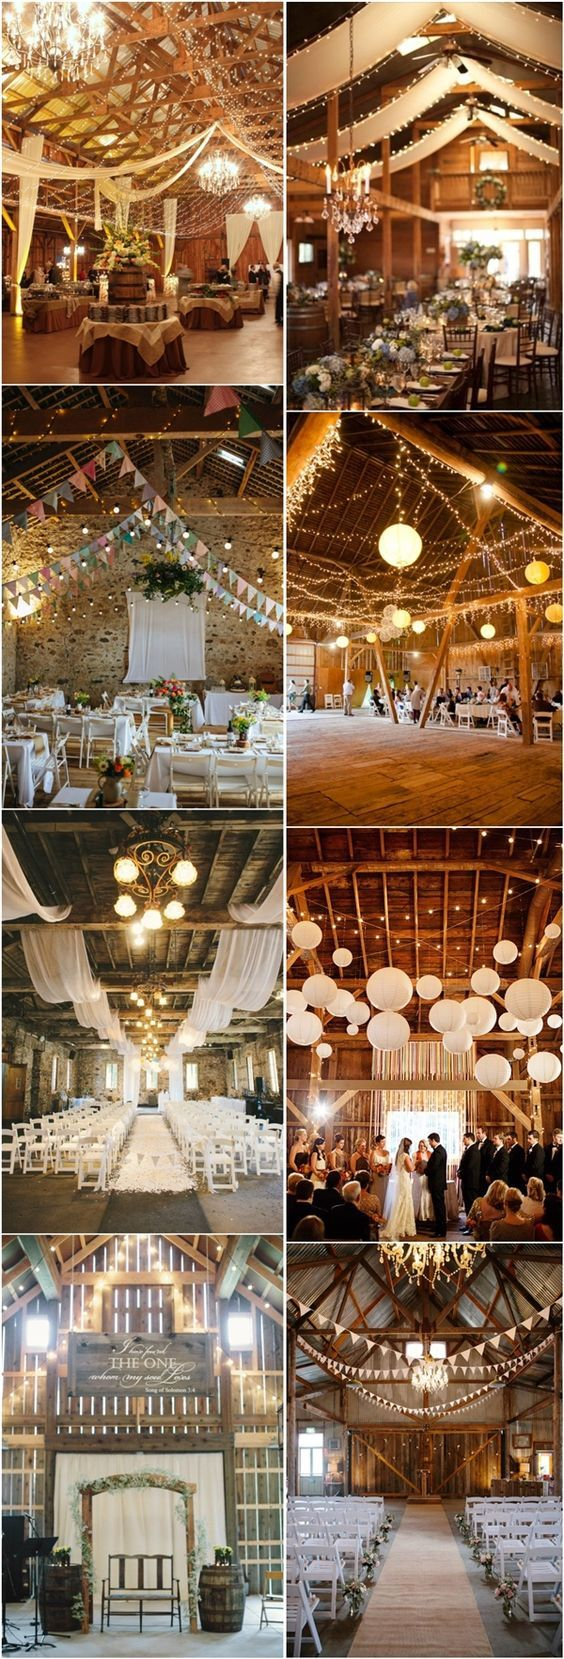 30 Romantic Indoor Barn Wedding Decor Ideas with Lights | MG Evénements Ile de Ré